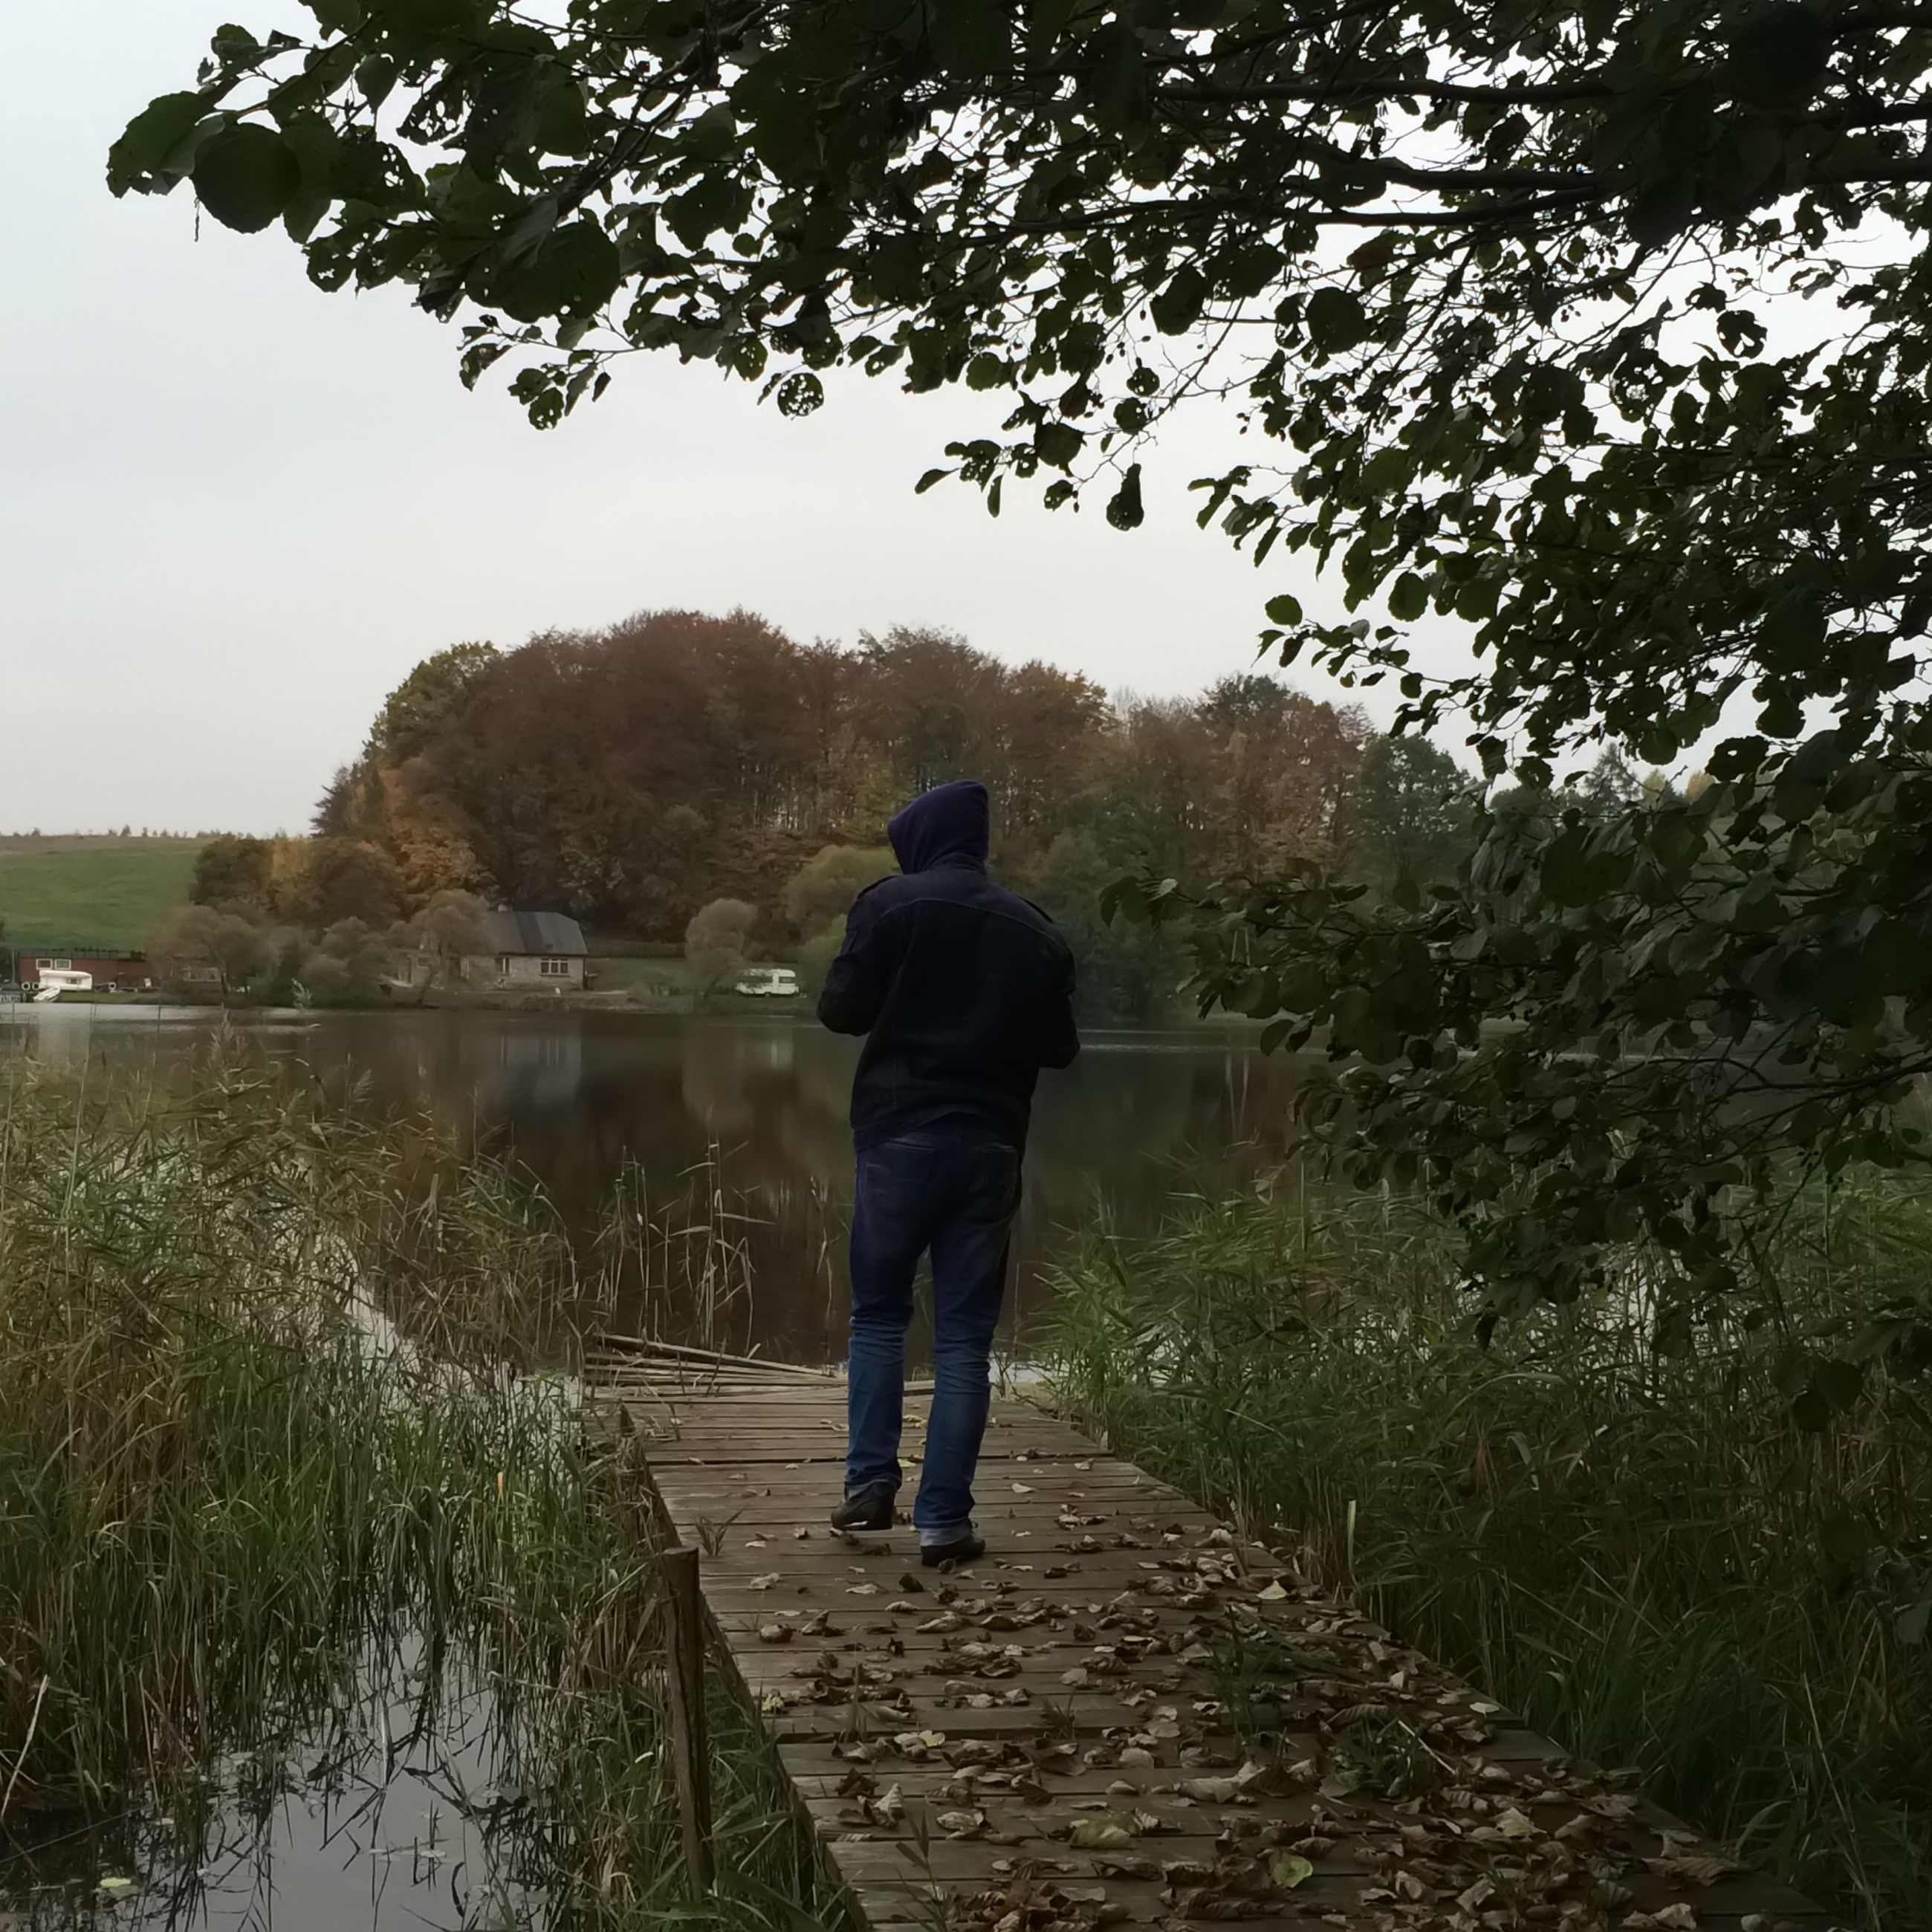 rear view, full length, tree, water, lifestyles, leisure activity, men, tranquility, standing, tranquil scene, casual clothing, lake, walking, nature, person, beauty in nature, sky, scenics